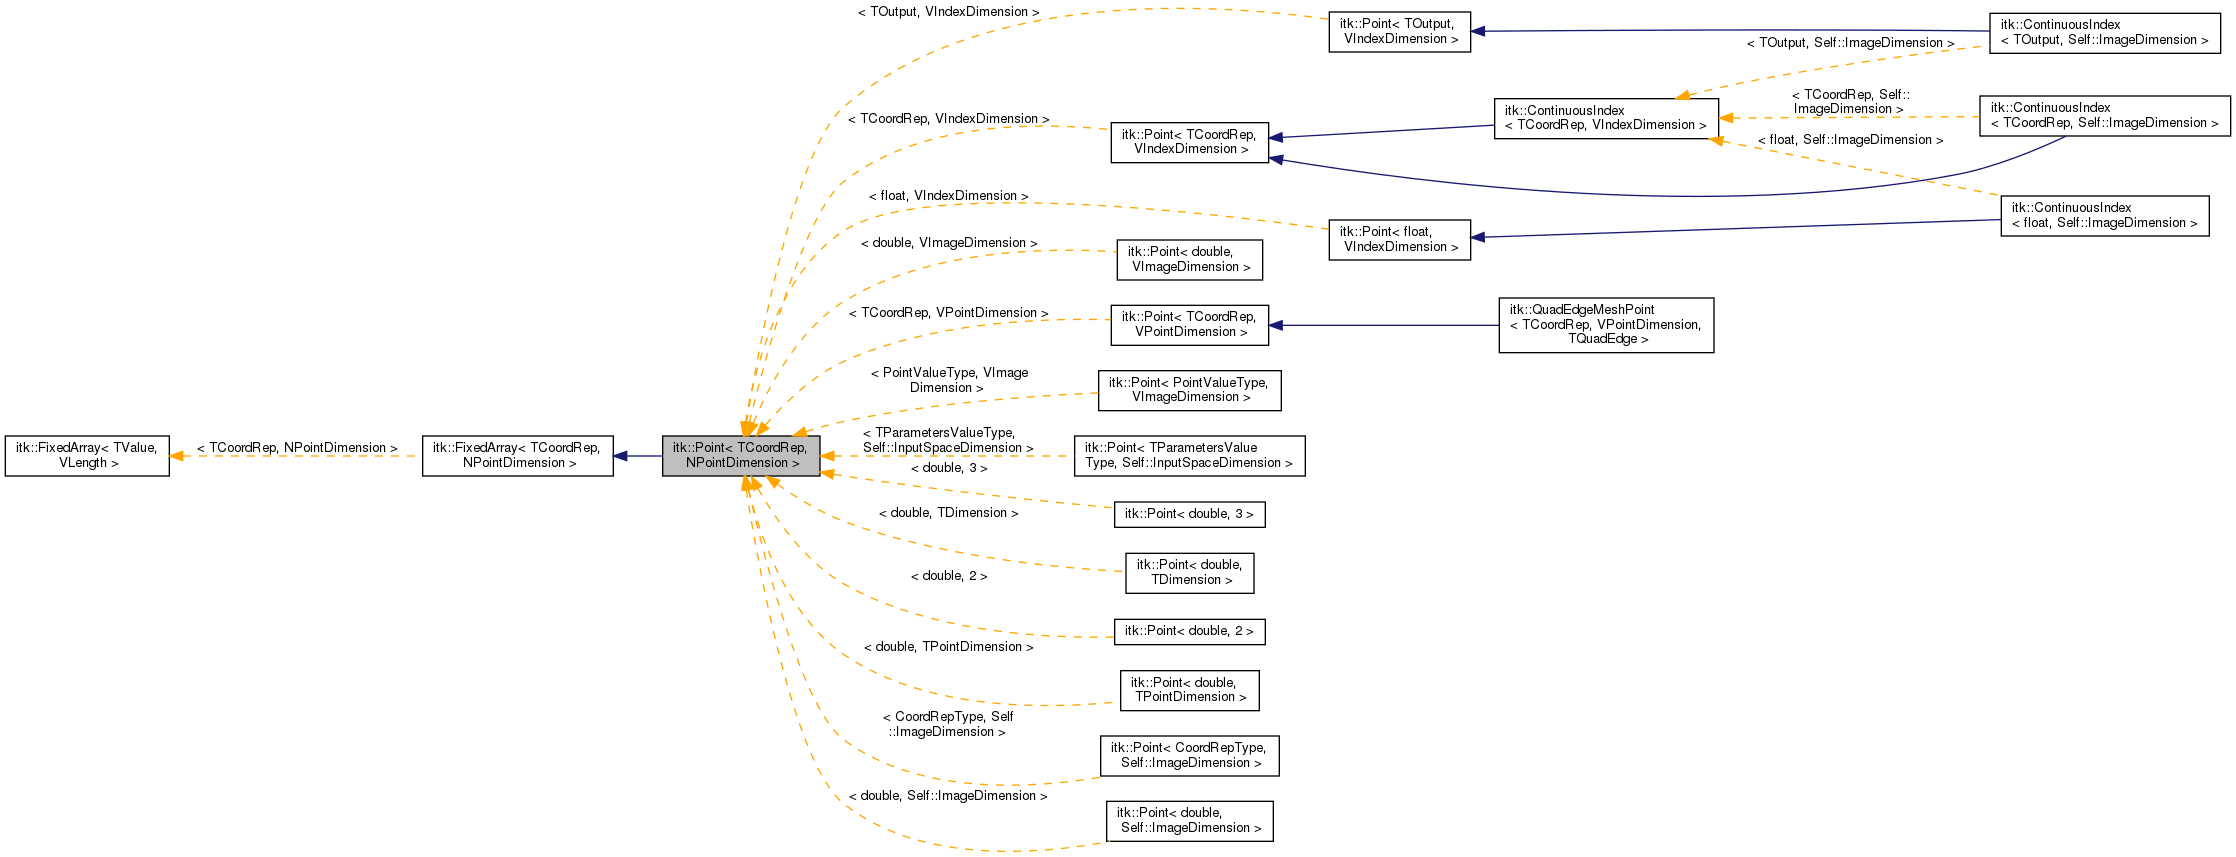 Itk itkpoint tcoordrep npointdimension class template reference inheritance graph ccuart Image collections